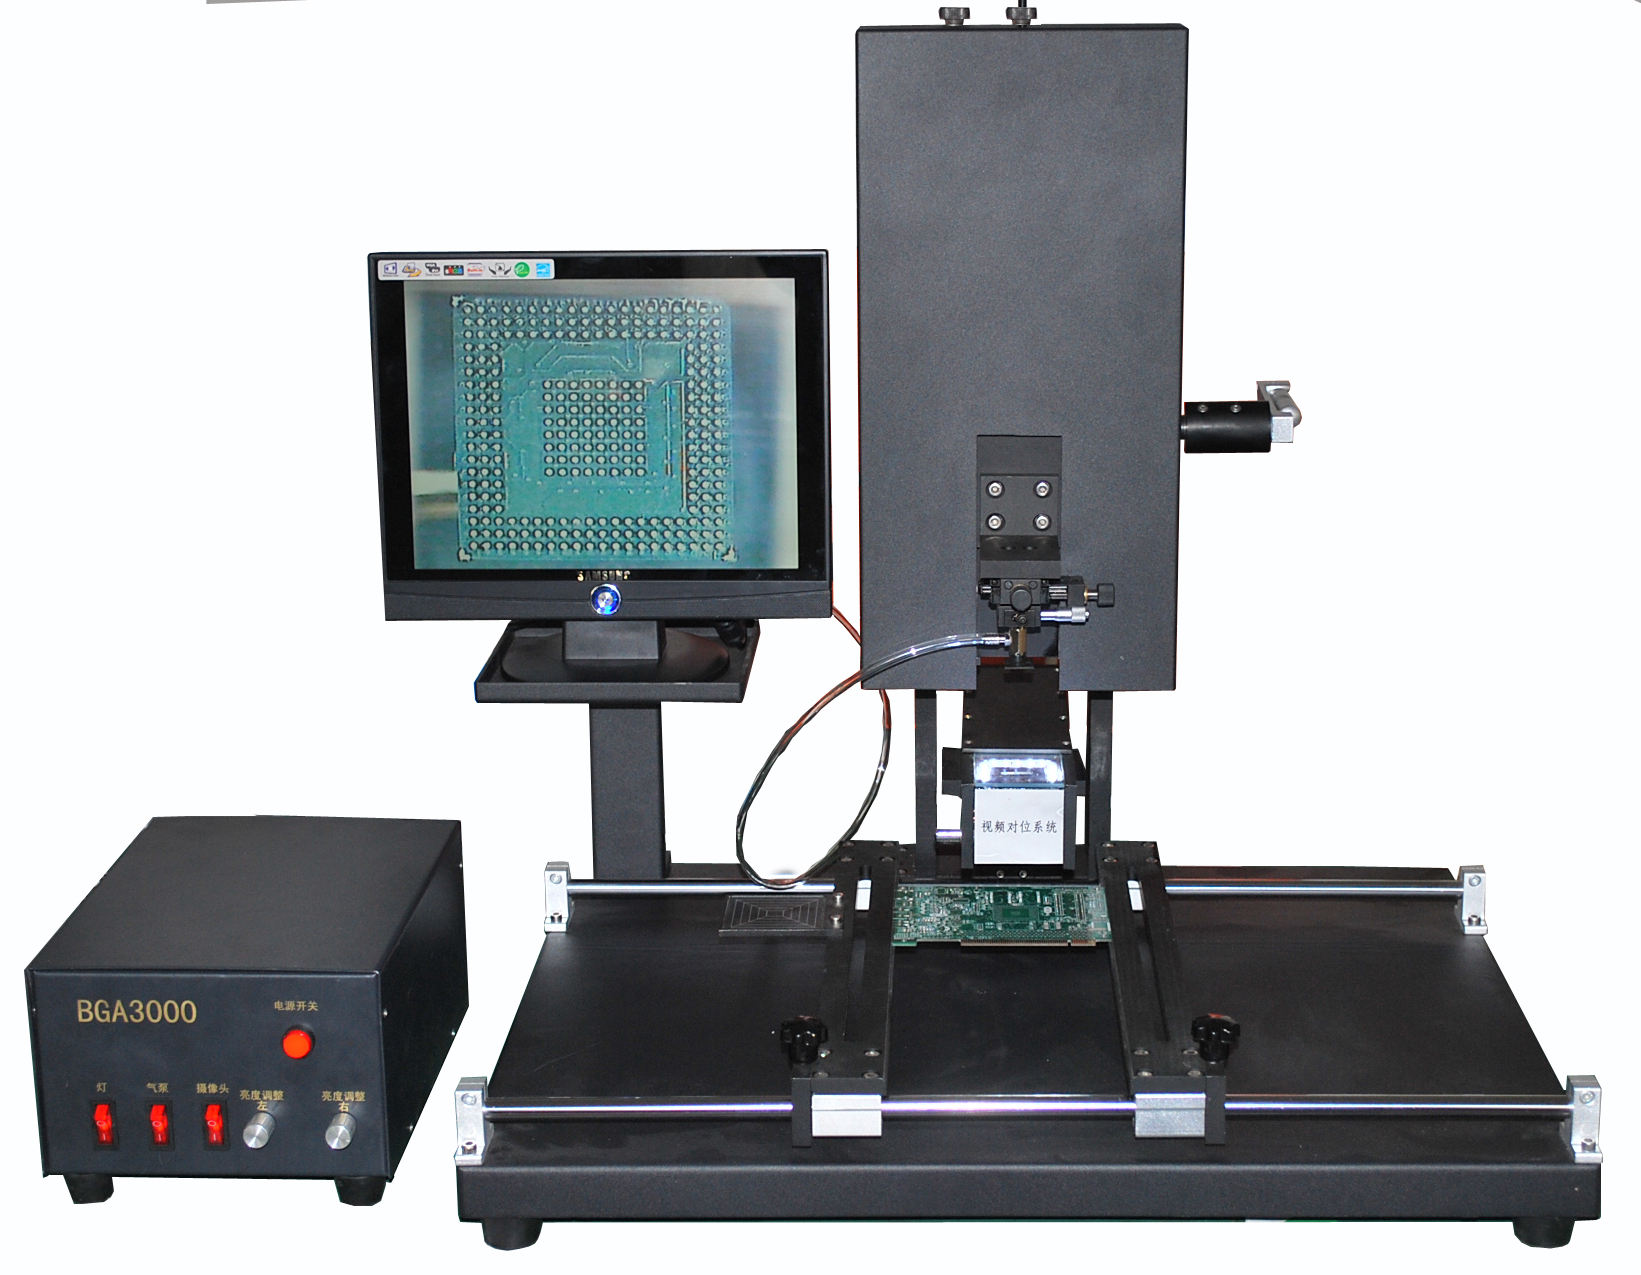 Bga hohe präzision montagesystem/bga bestückung maschine/<span class=keywords><strong>Computer</strong></span>-<span class=keywords><strong>Hardware</strong></span> montage bga3000( Taschenlampe)